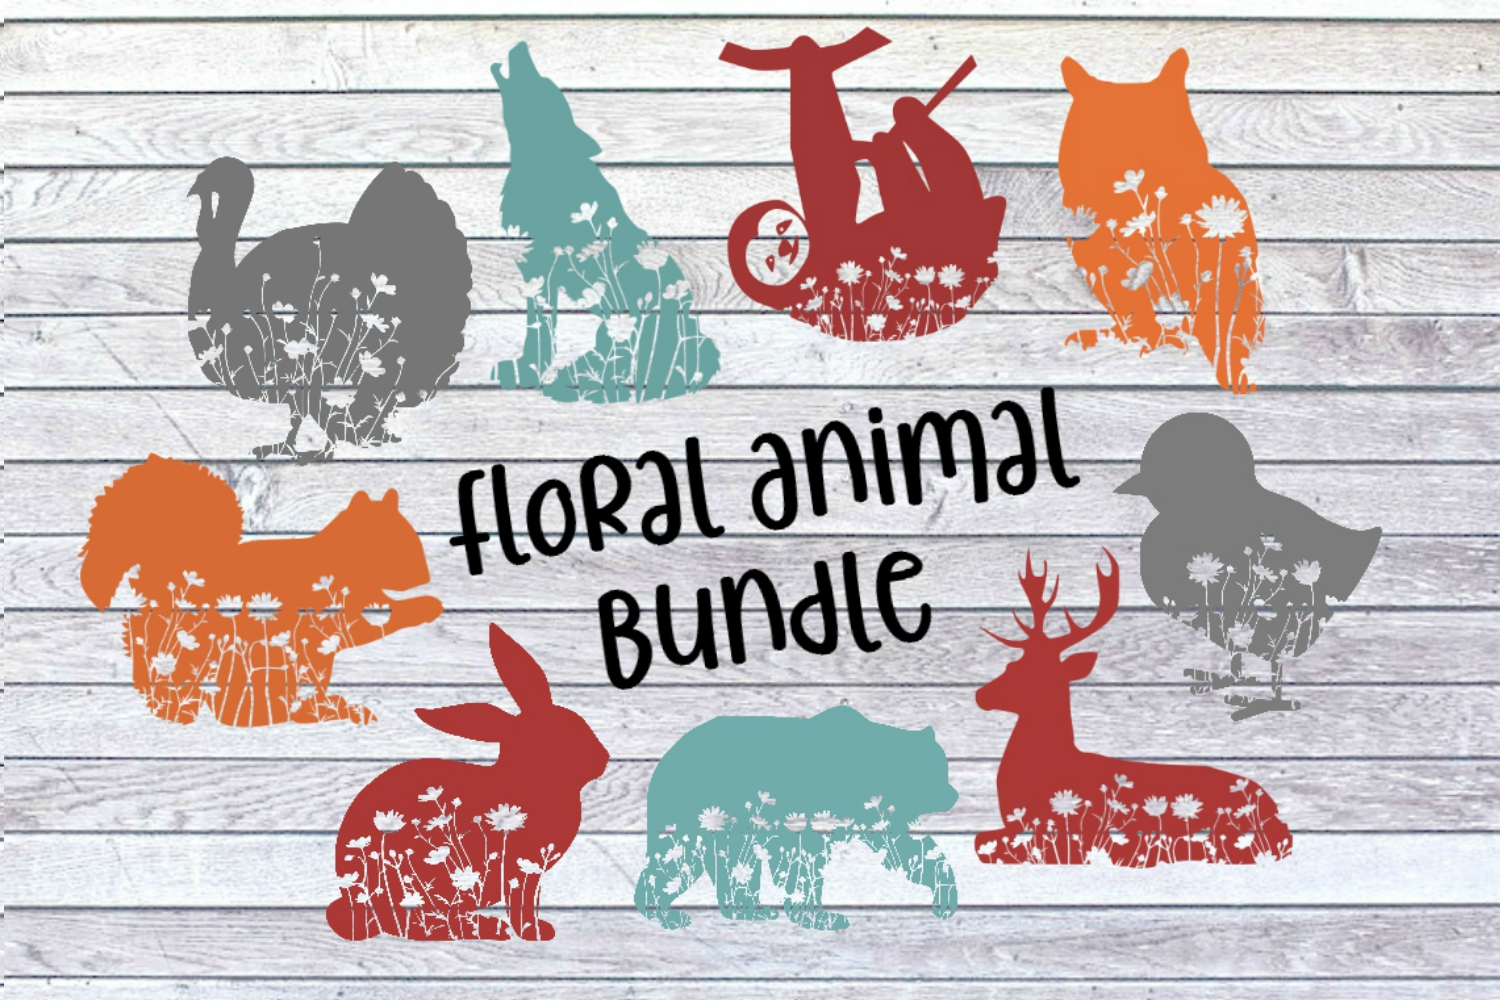 Floral Bunny Mandala Forest Zentangle Flower SVG/DXF/PNG example image 2